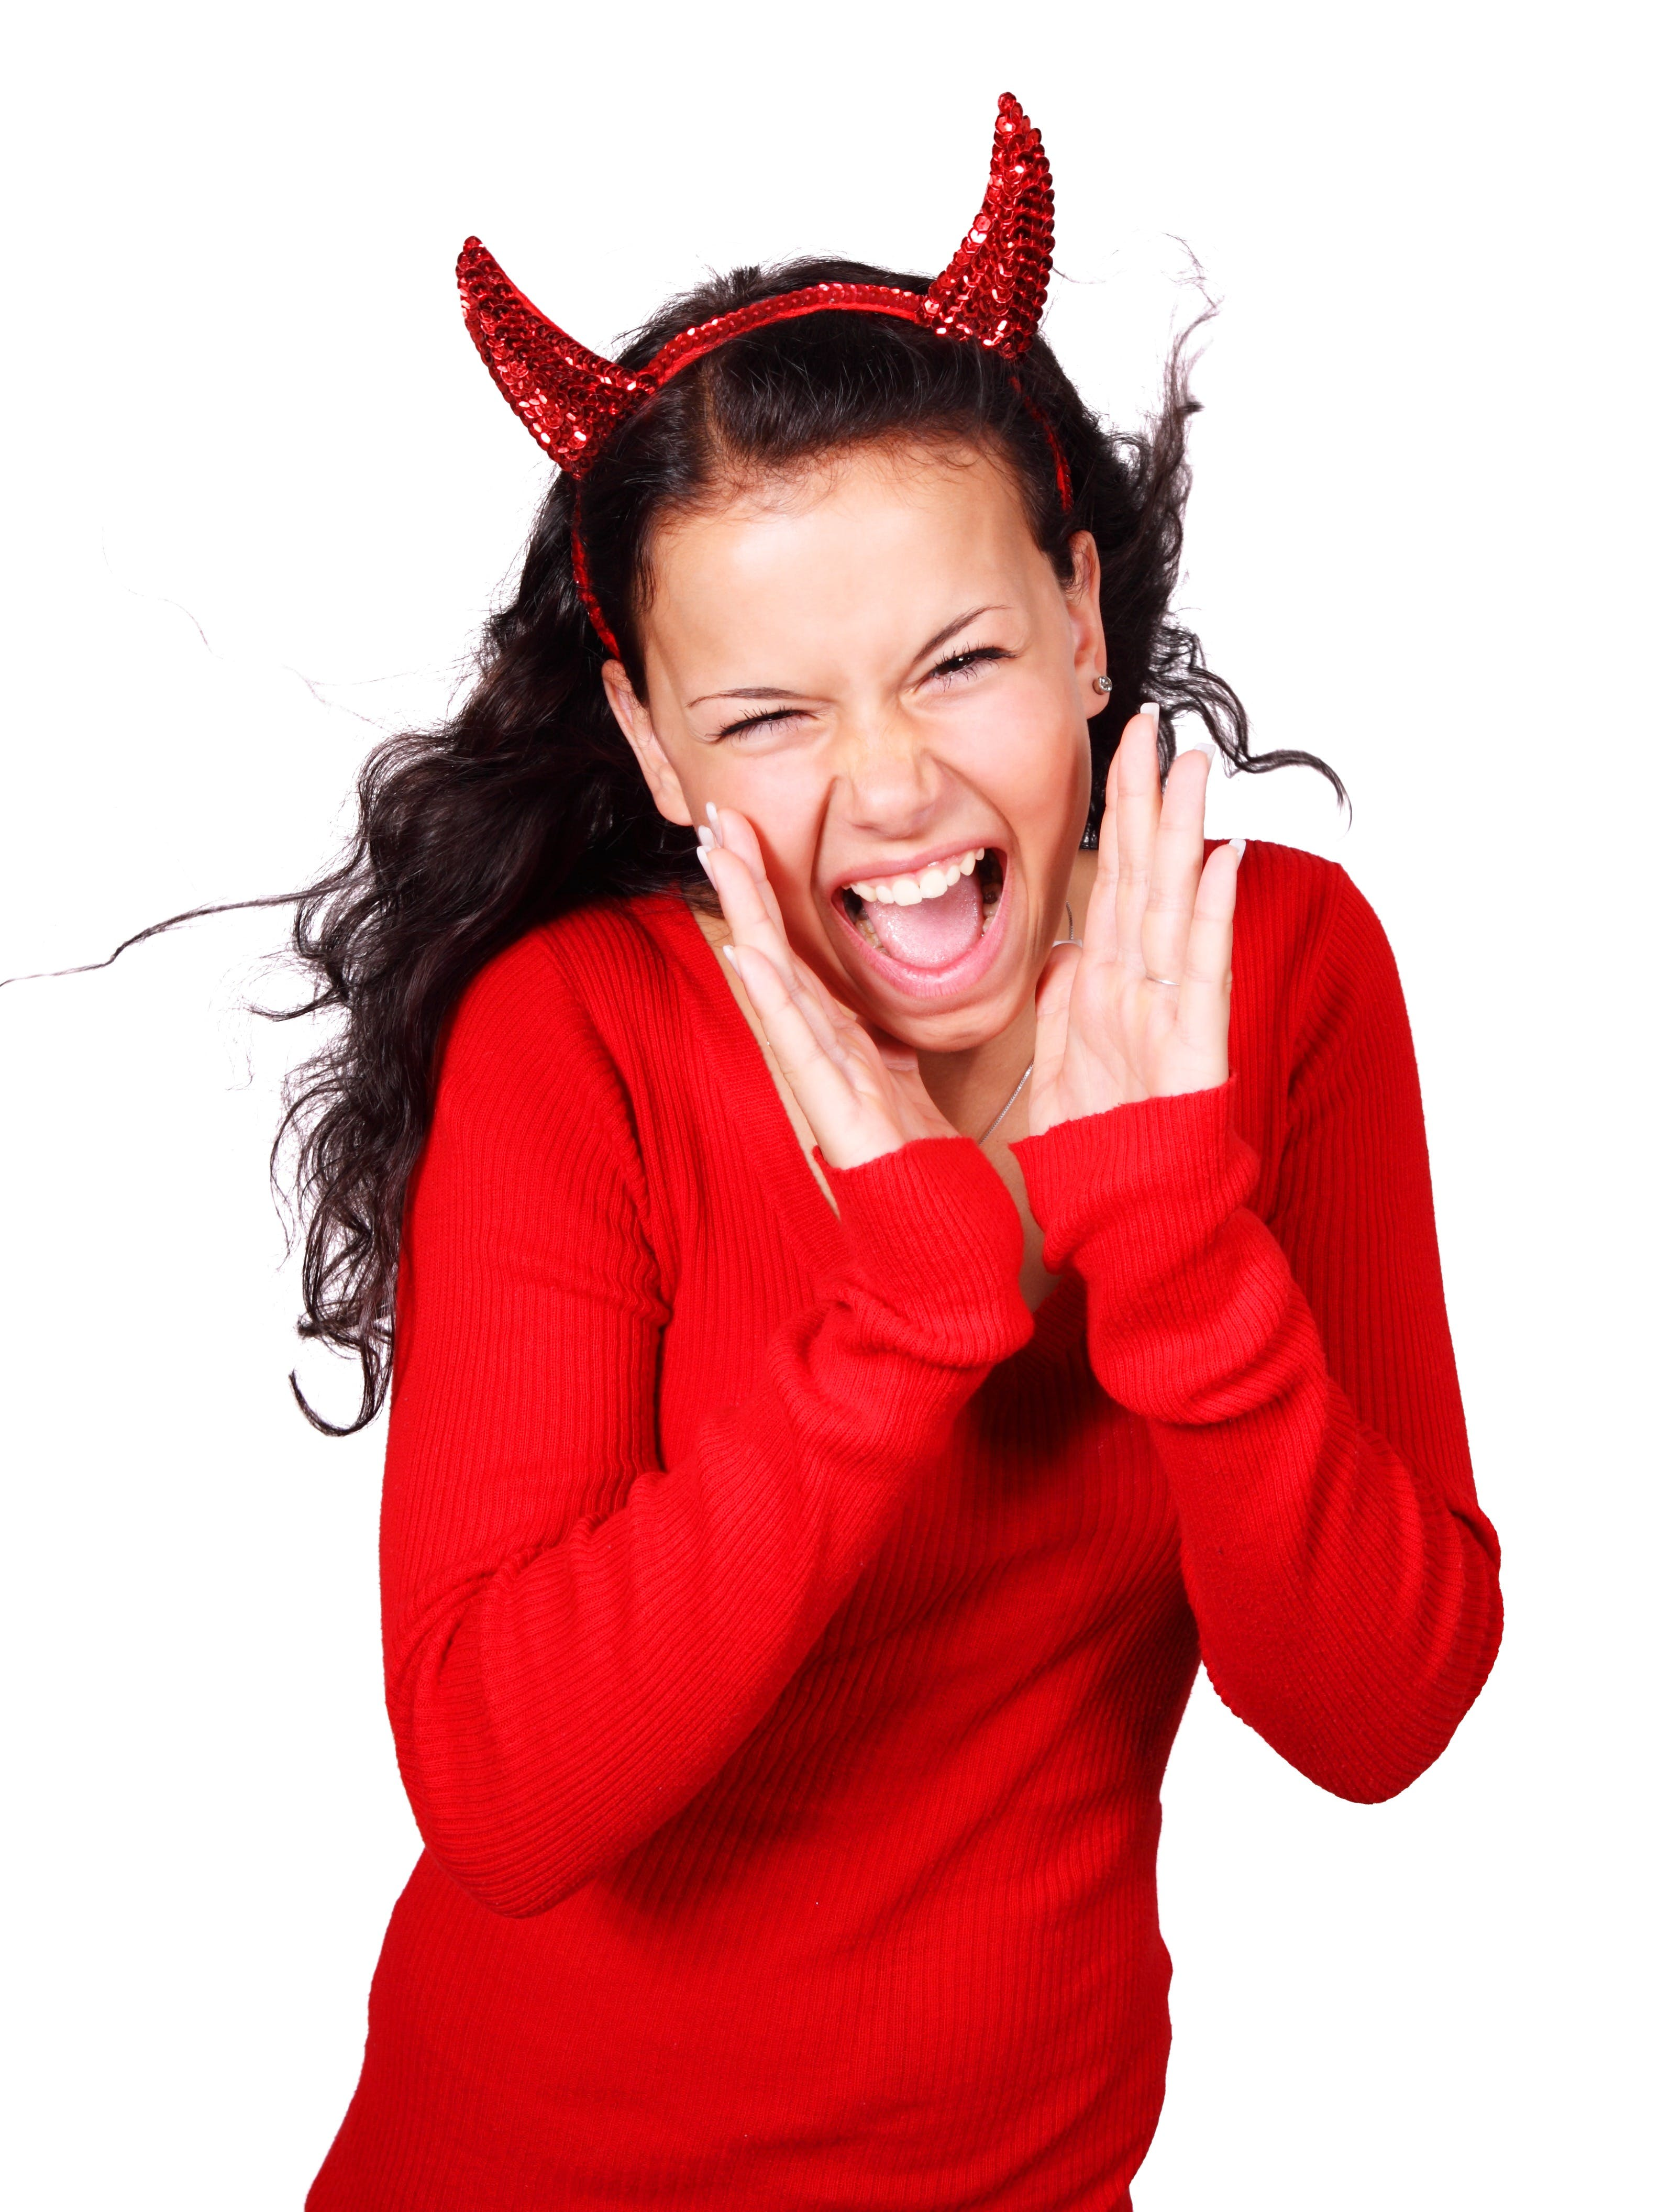 Shouting Woman Wearing Red Devil Horns Headband